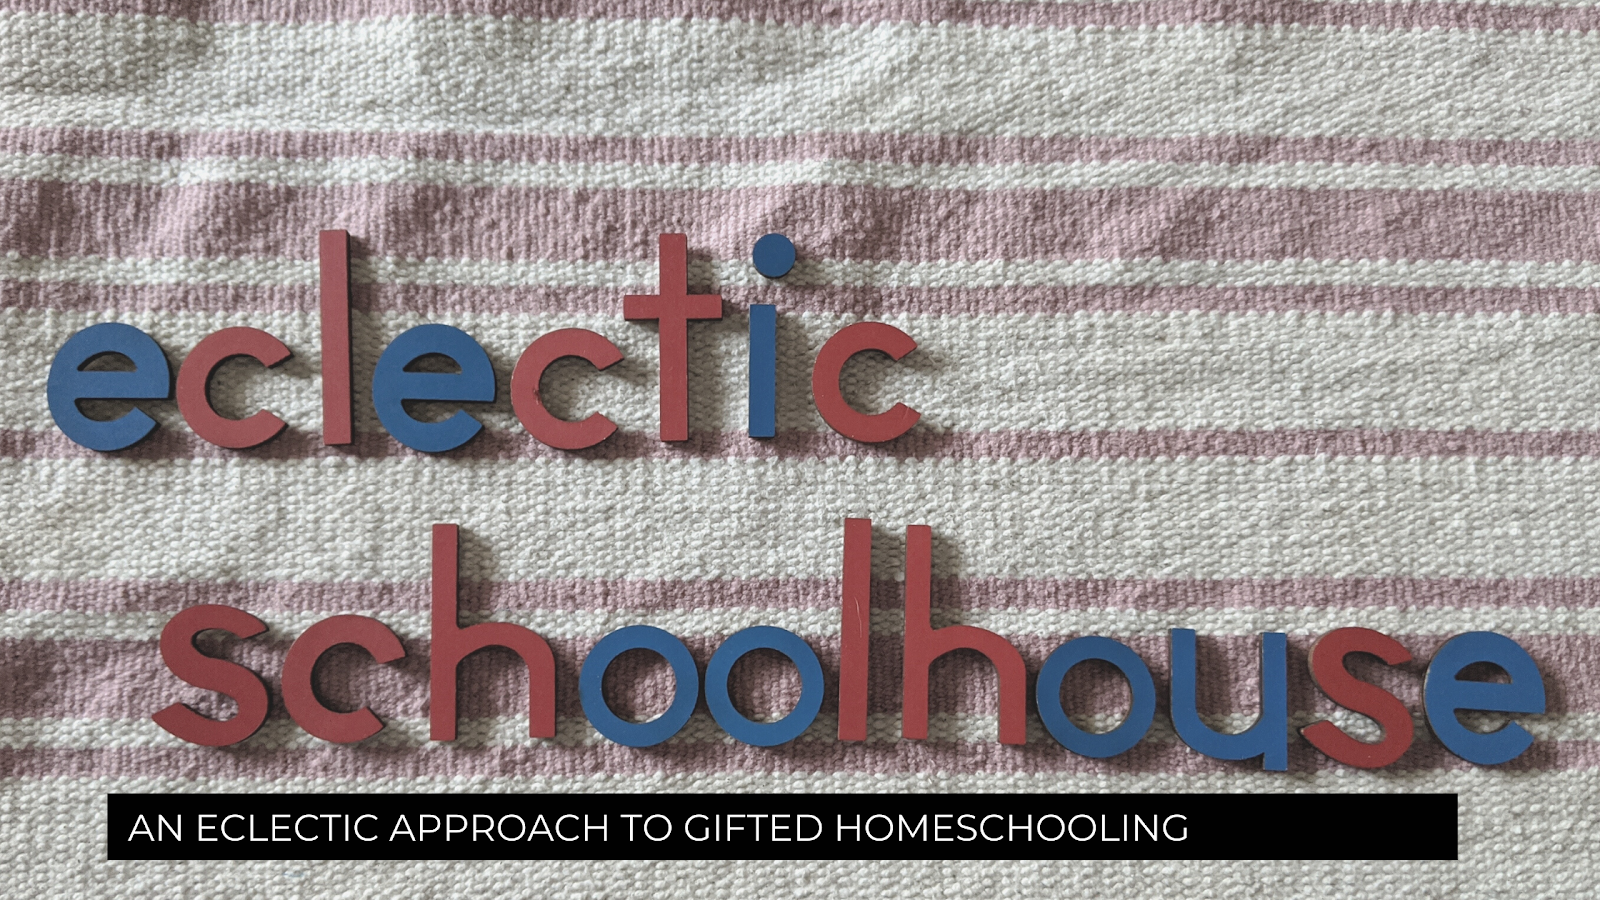 Eclectic Schoolhouse - Eclectic Approach to Gifted Homeschooling